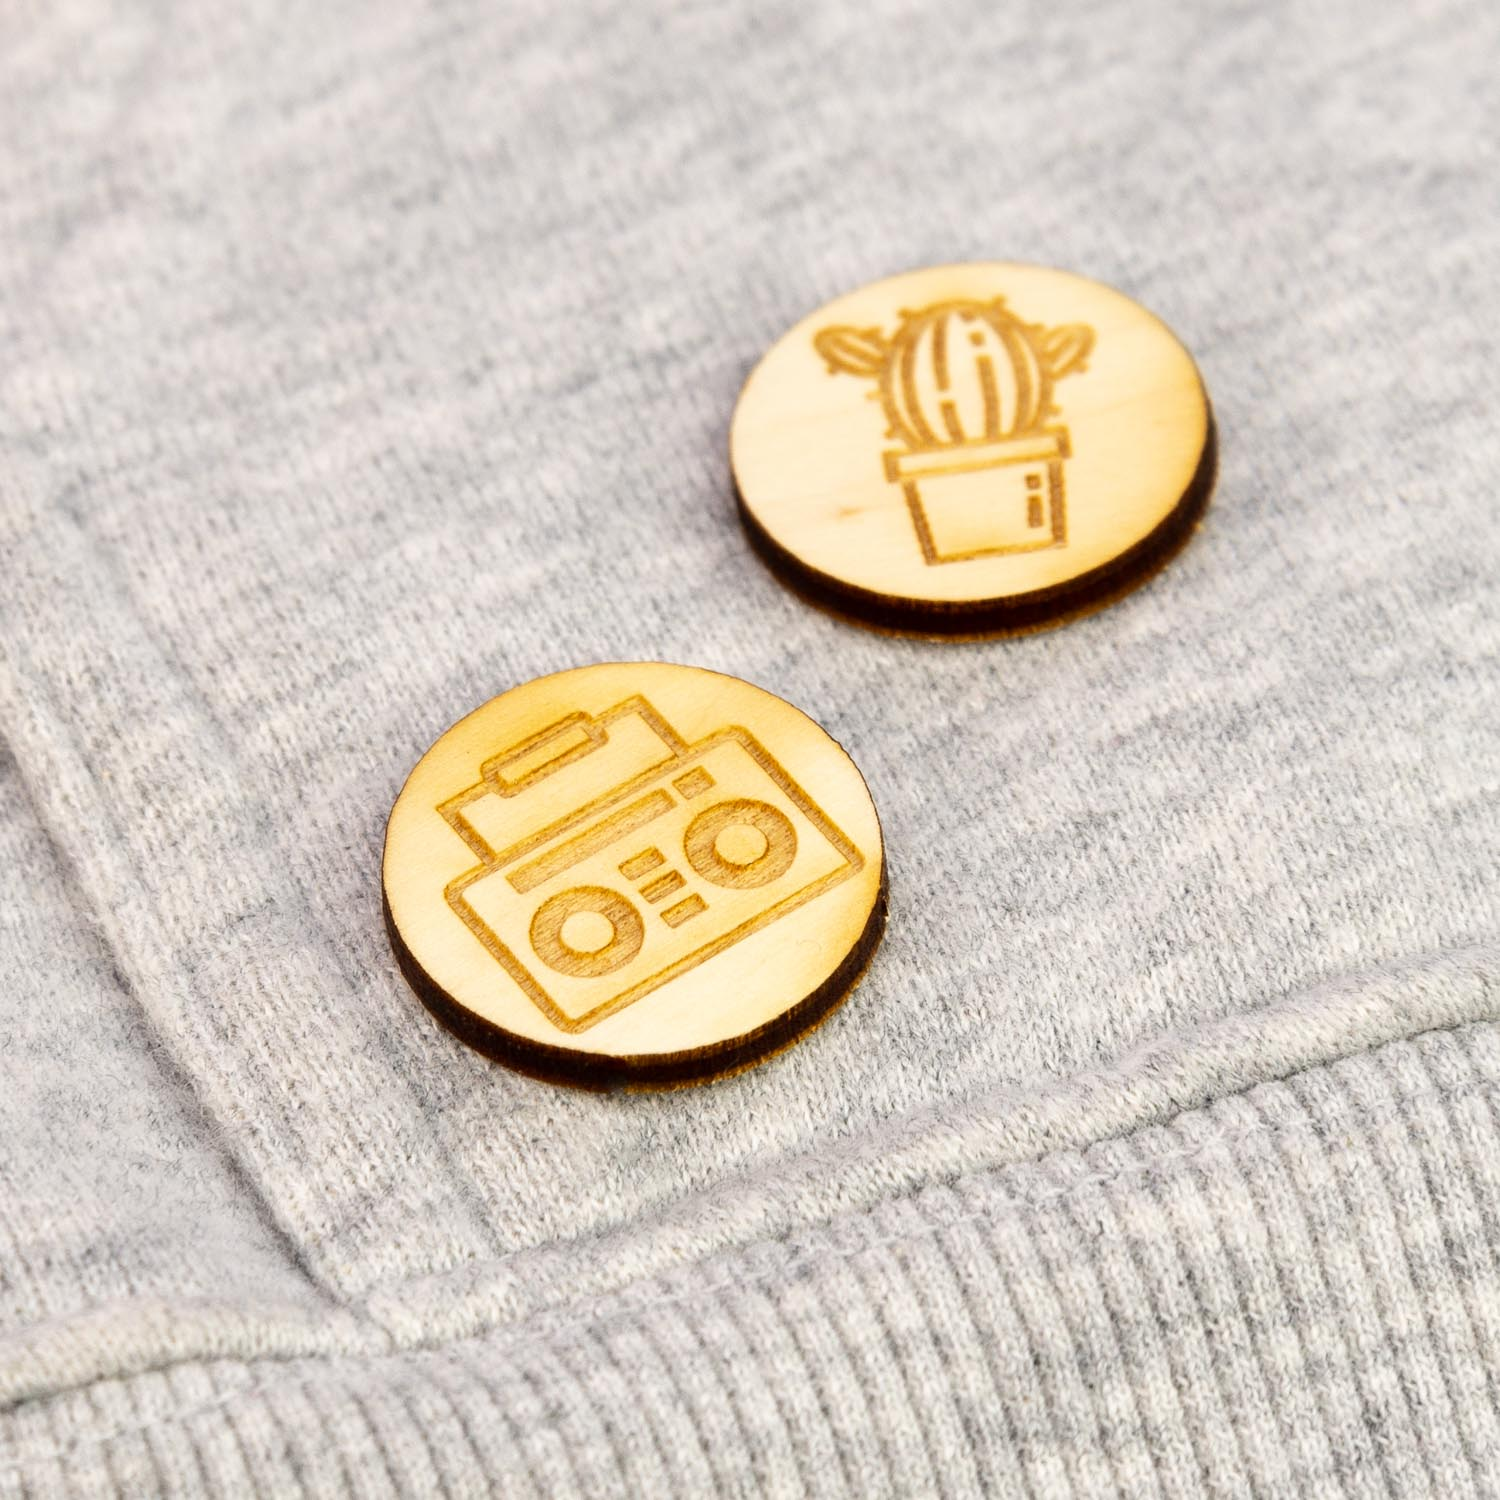 Laser engraved lapel pins on a sweater